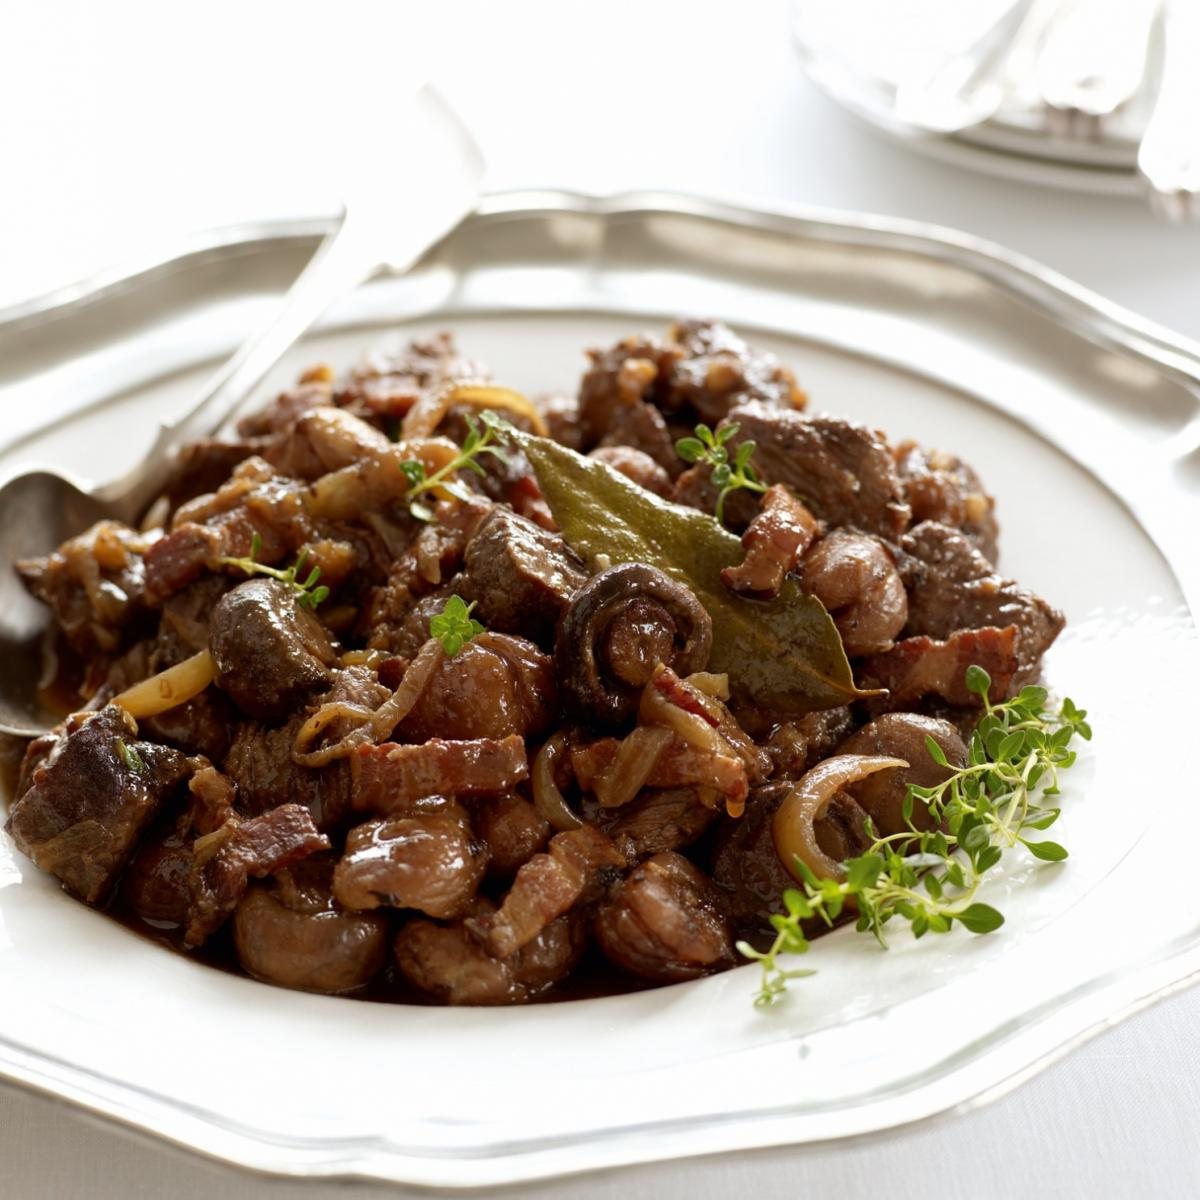 Happy braised venison with bacon chestnuts and wild mushrooms in a rich maderia sauce